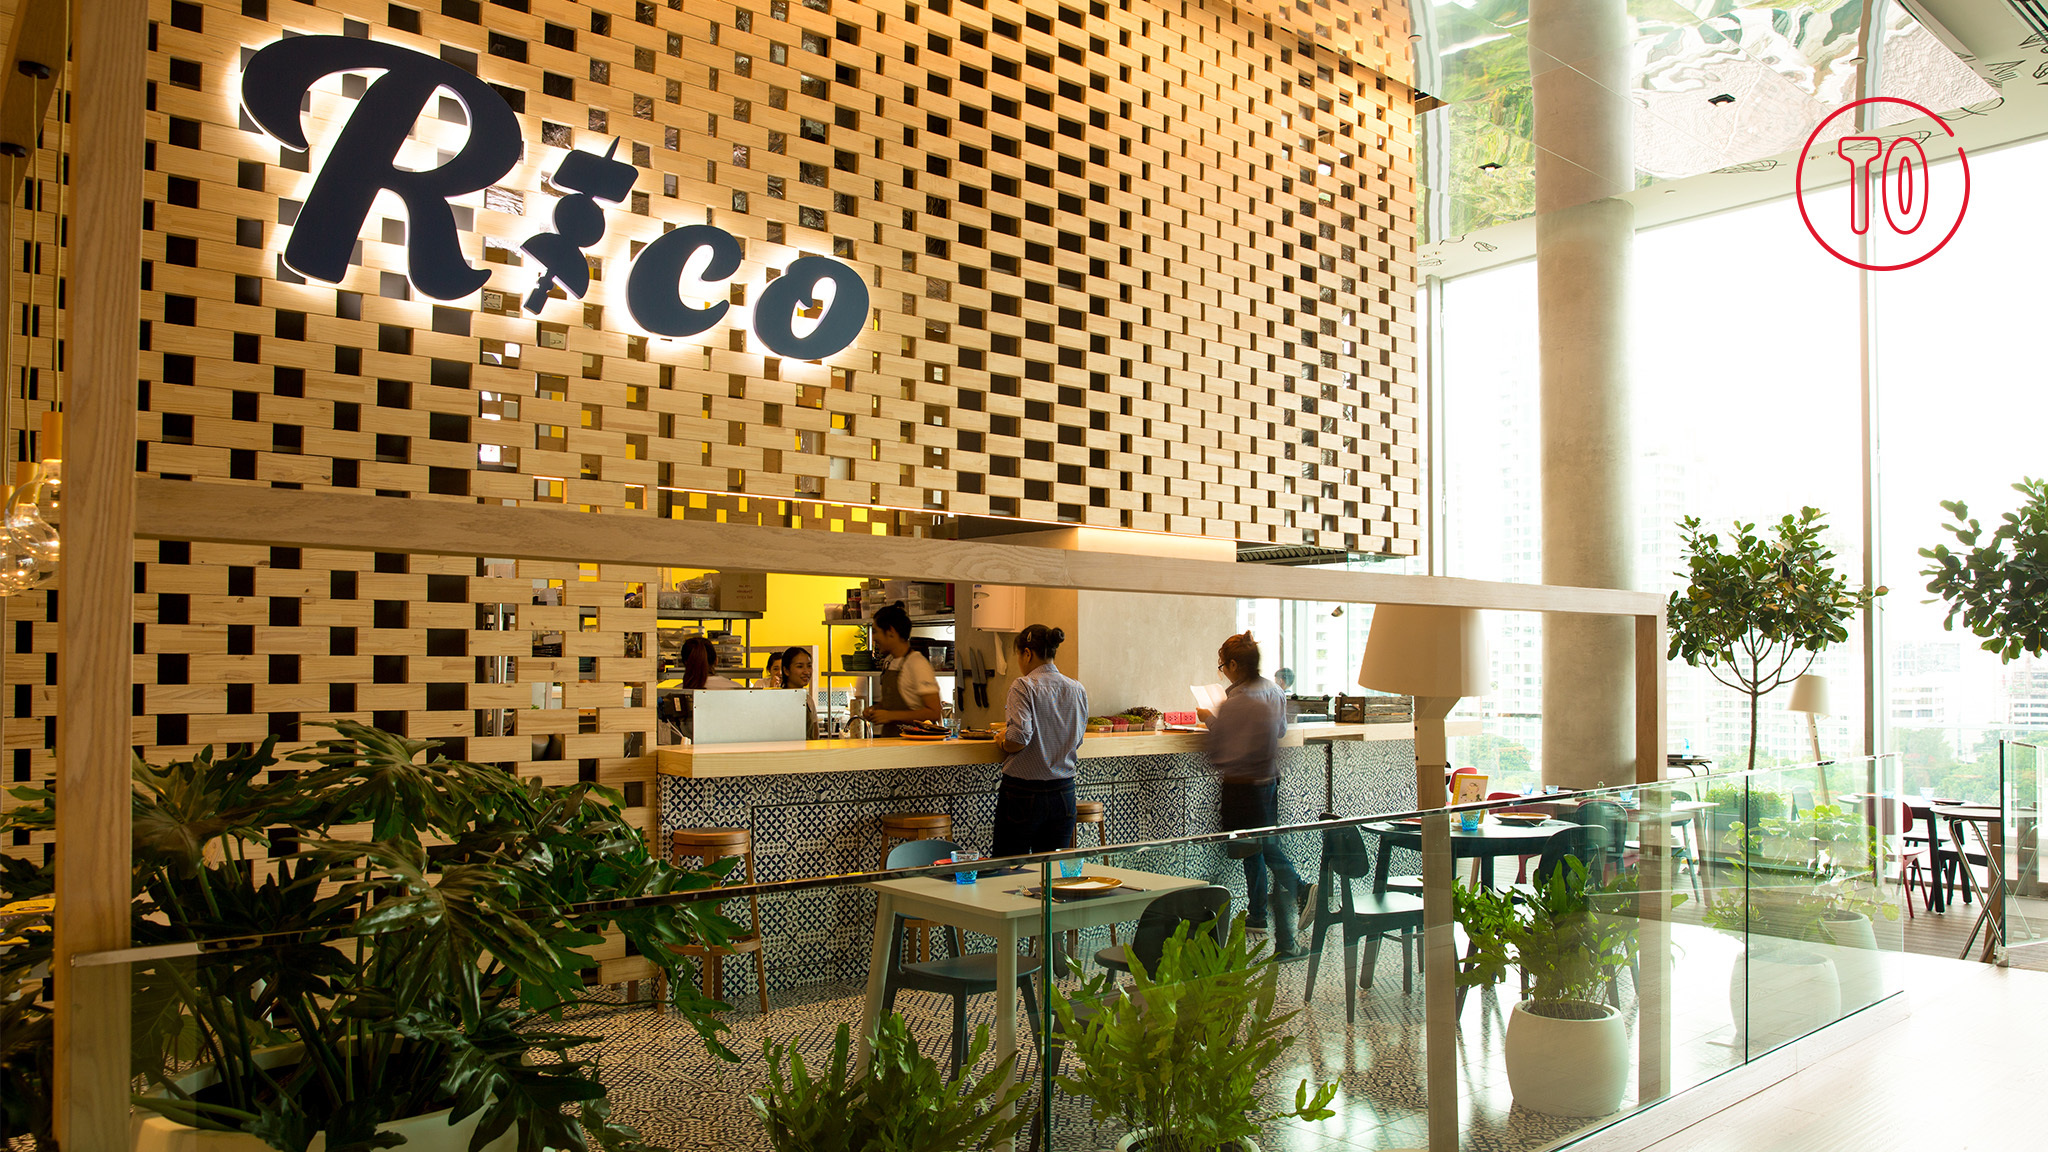 Rico, the Spanish restaurant at Central Embassy